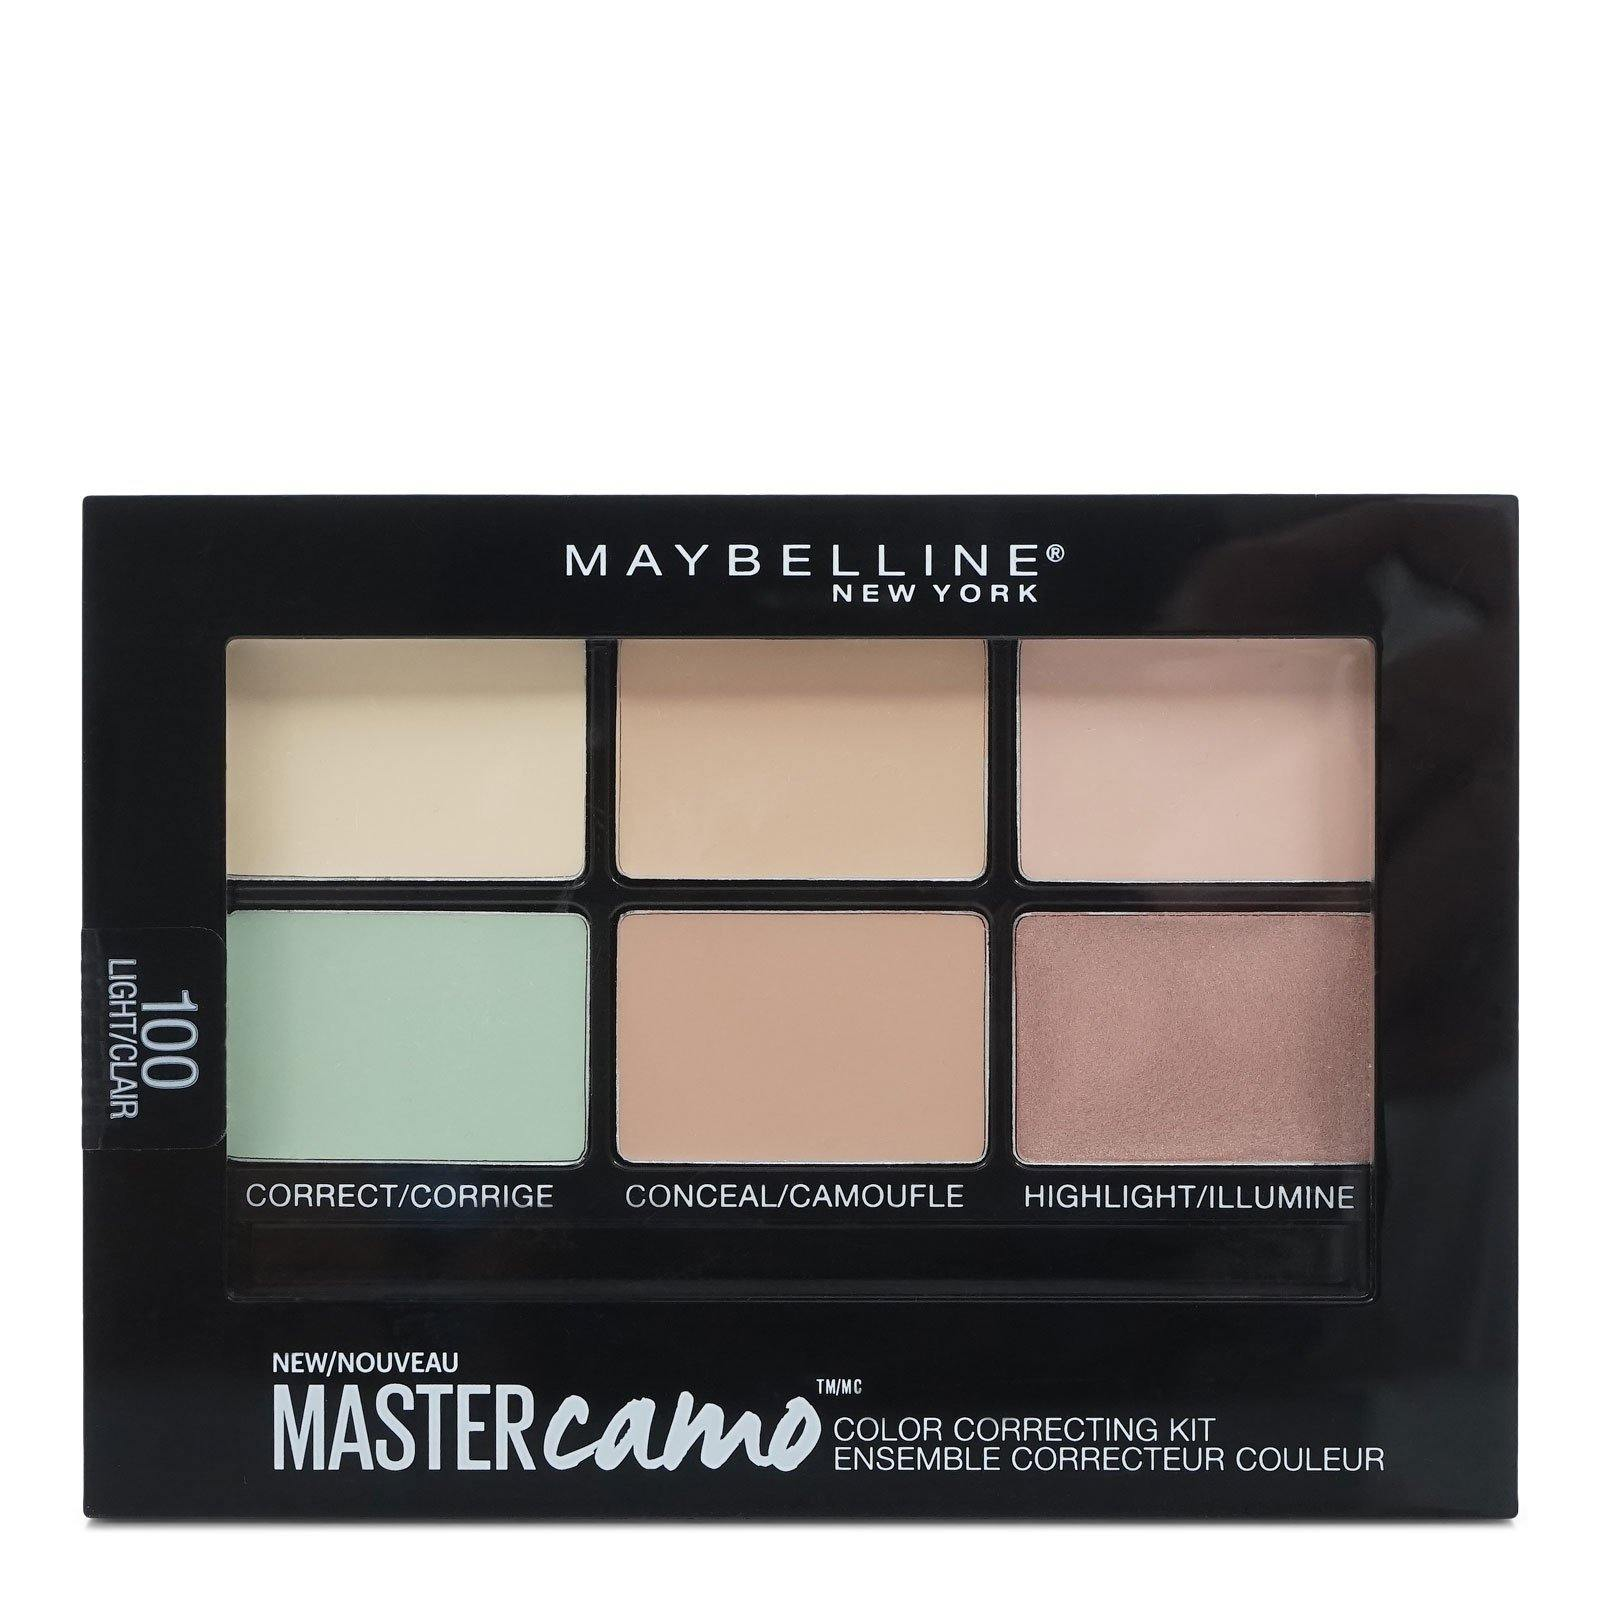 Maybelline Facestudio Master Camo Color Correcting Kit, Light